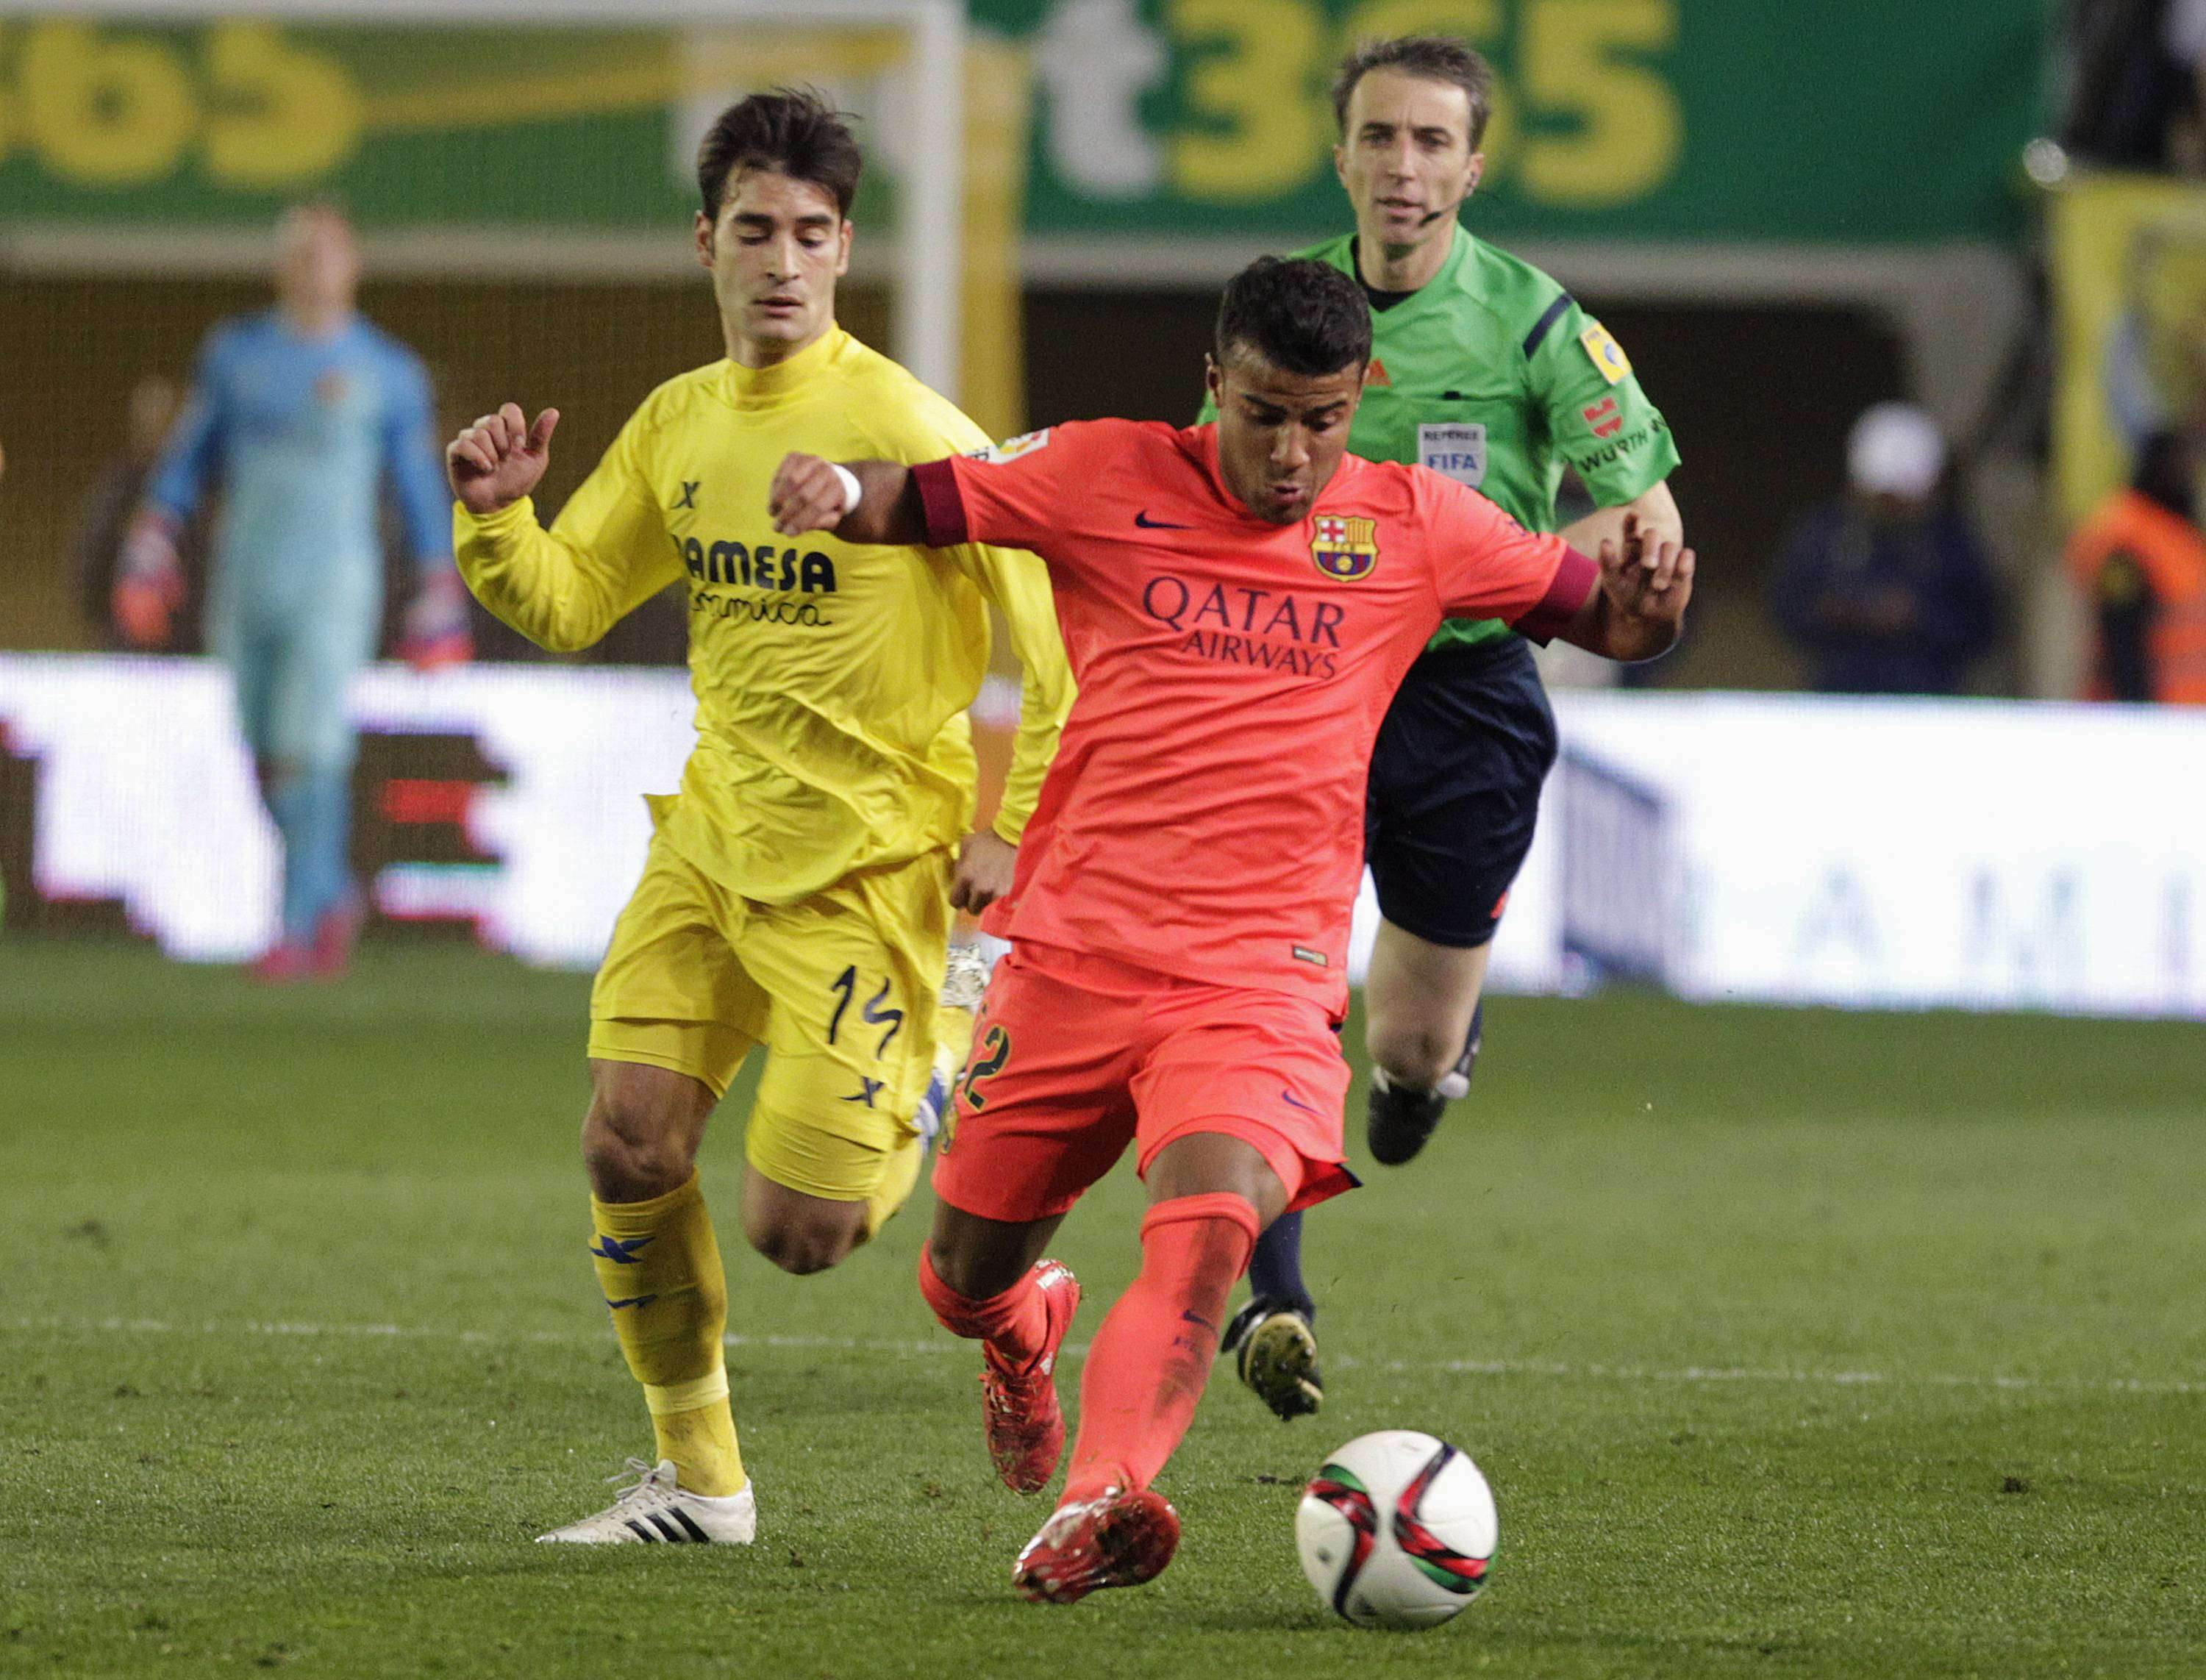 Barcelona's Rafinha Alcantara (R) and Villarreal's Manuel Trigueros fight for the ball during their Spanish King's Cup semi-final second leg soccer match at the Madrigal stadium in Villarreal, March 4, 2015. REUTERS/Heino Kalis (SPAIN - Tags: SPORT SOCCER) Foto: HEINO KALIS/REUTERS